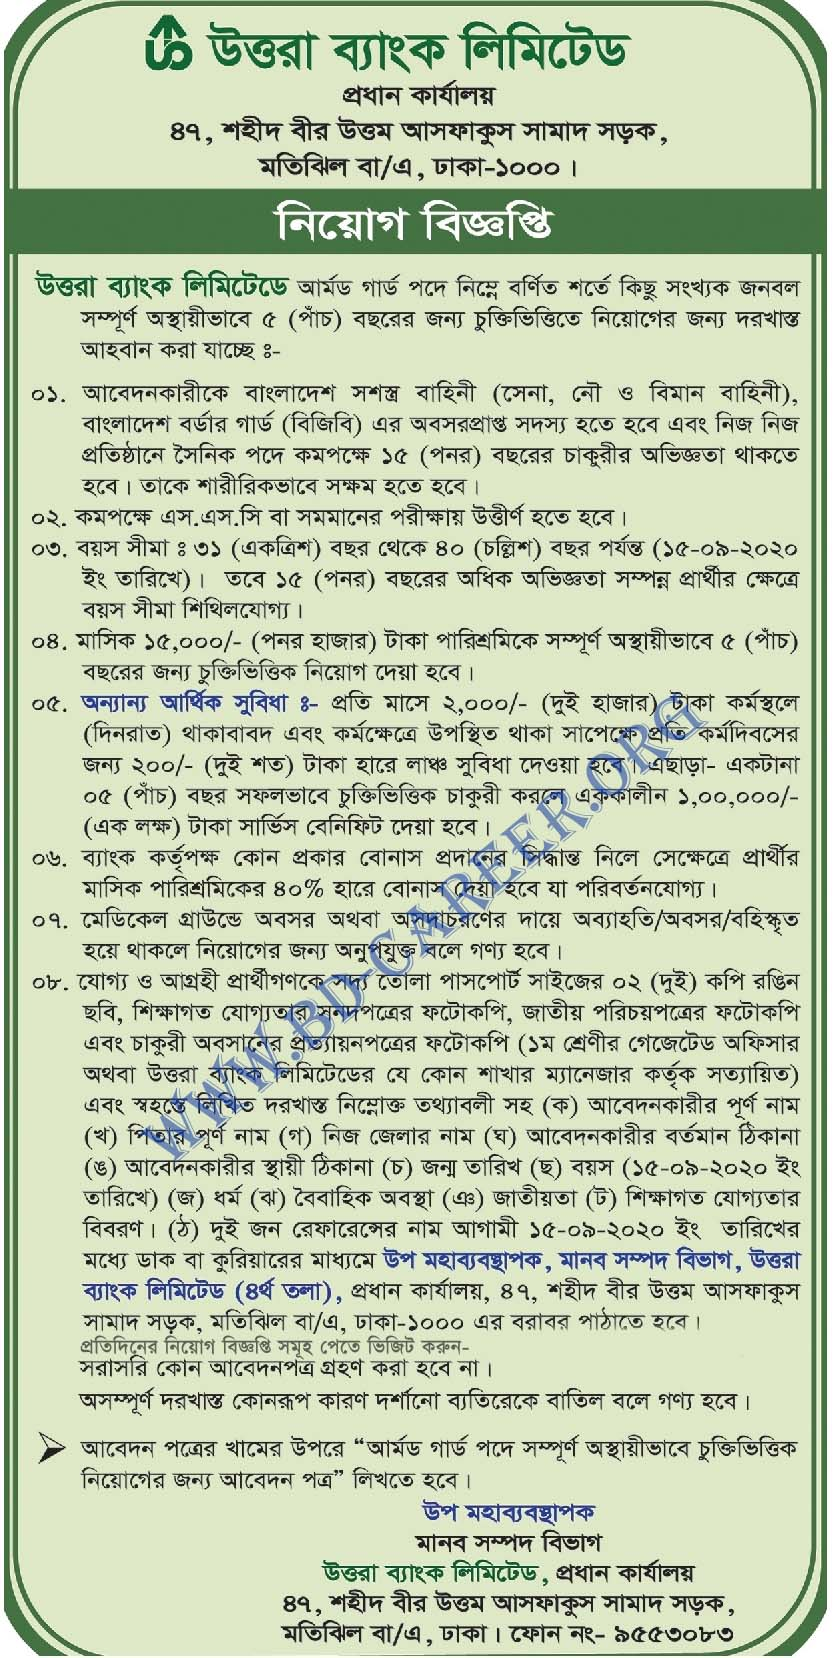 Uttara Bank Ltd Job Circular